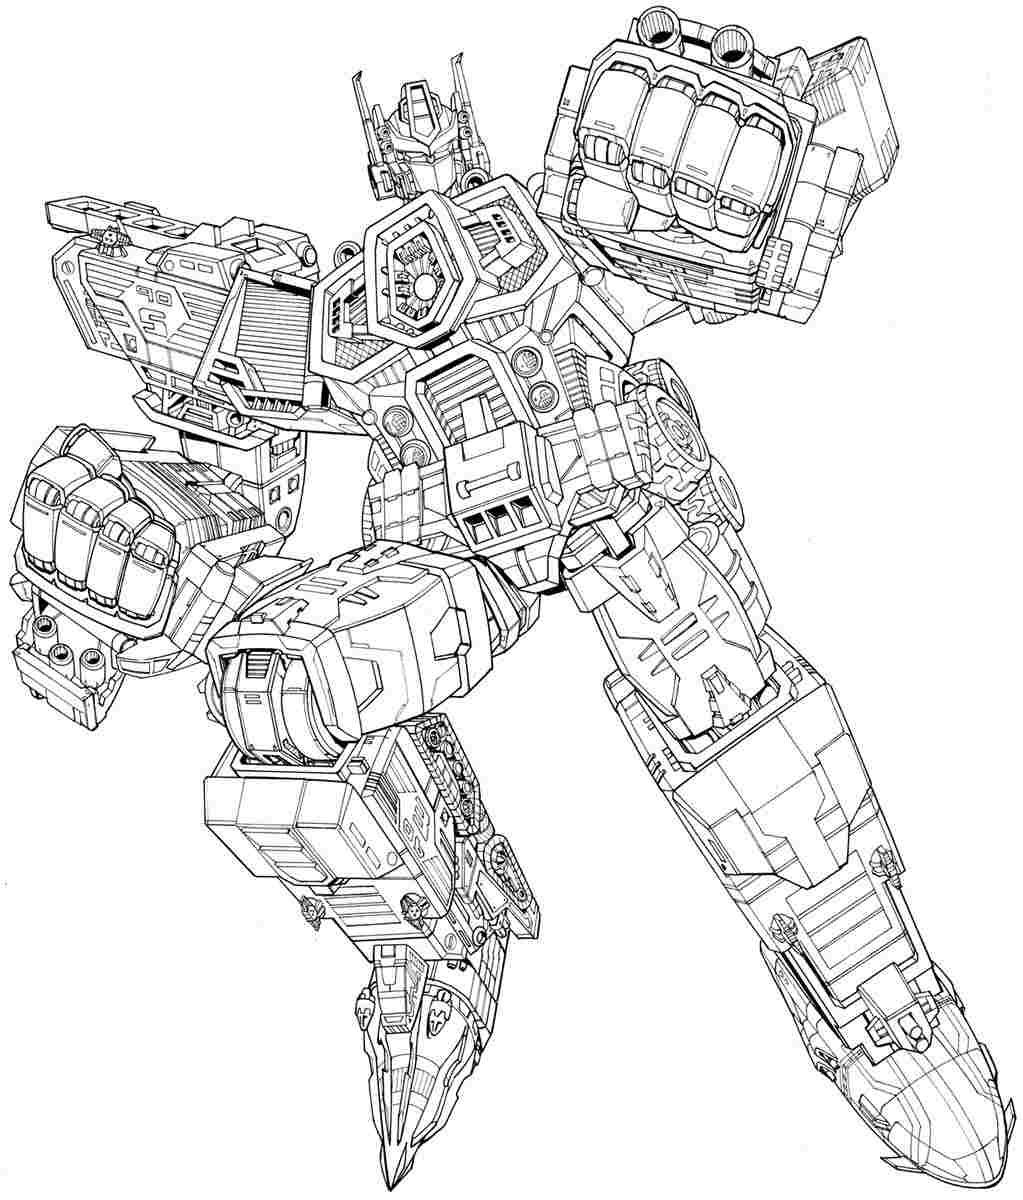 free coloring pages for boys transformers costume | Transformers Printable Coloring Pages | Printable Free ...